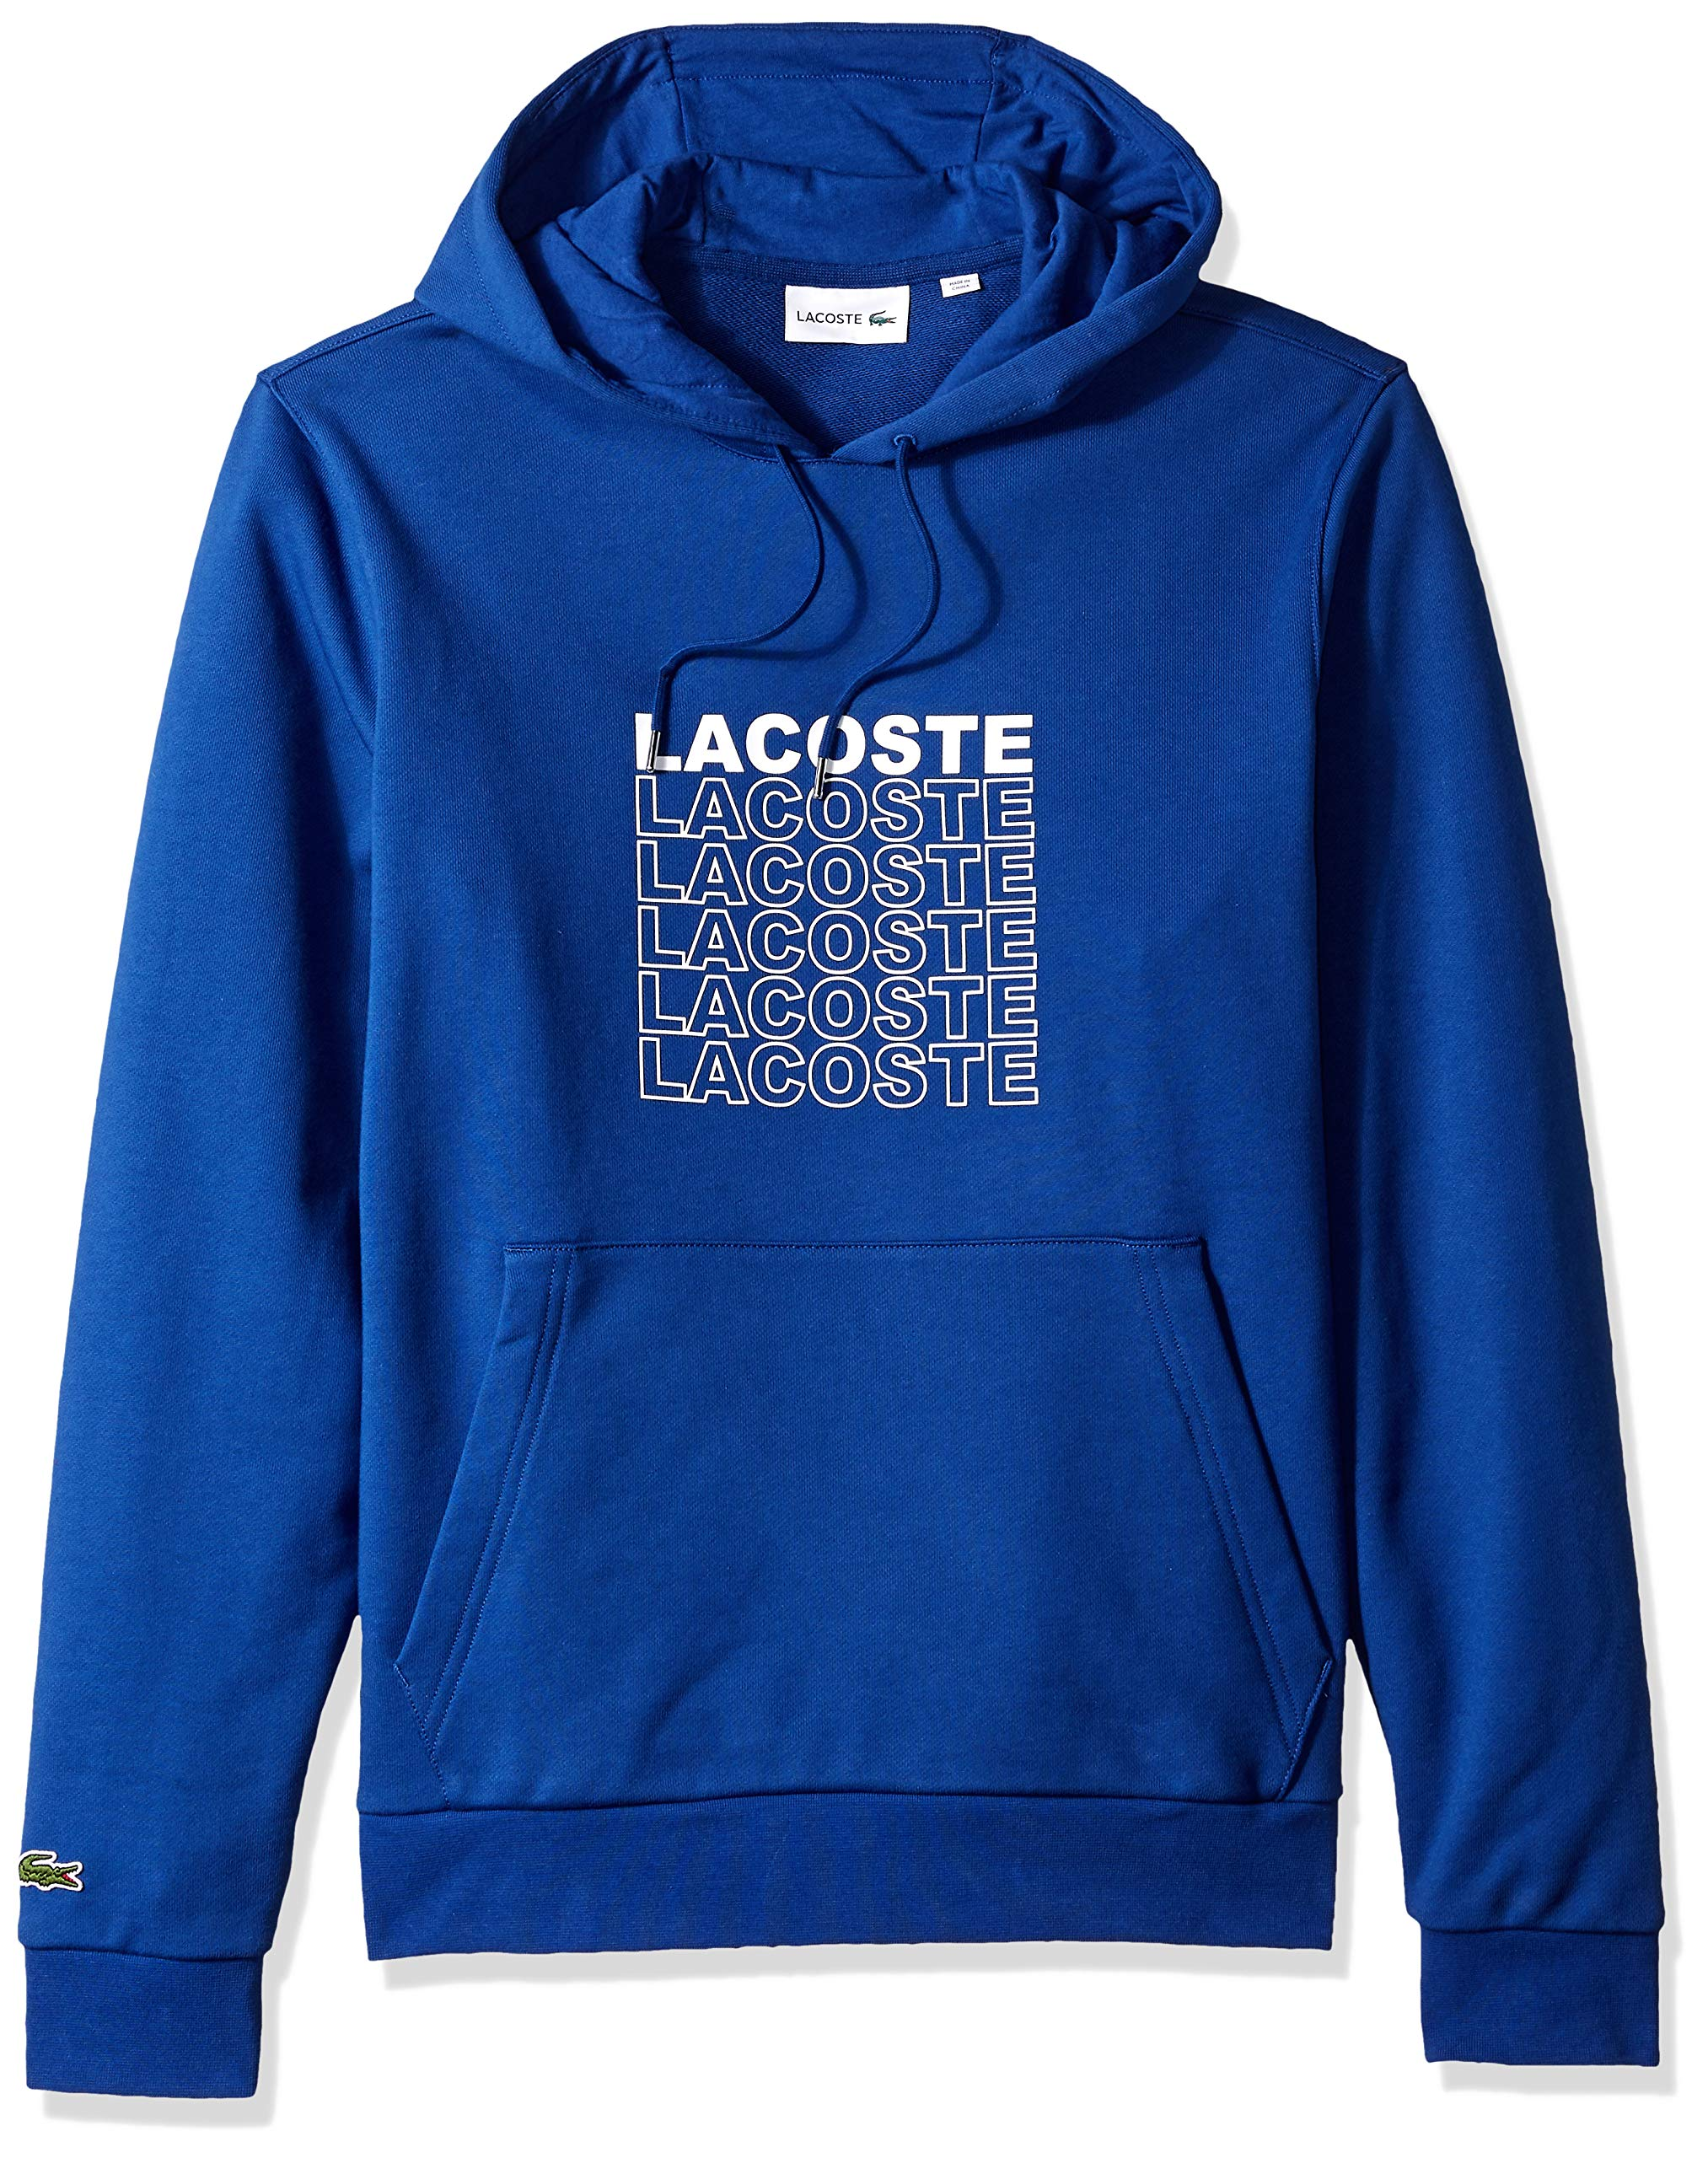 Lacoste Men's Long Sleeve French Terry Graphic Sweater, Captain, X-Large